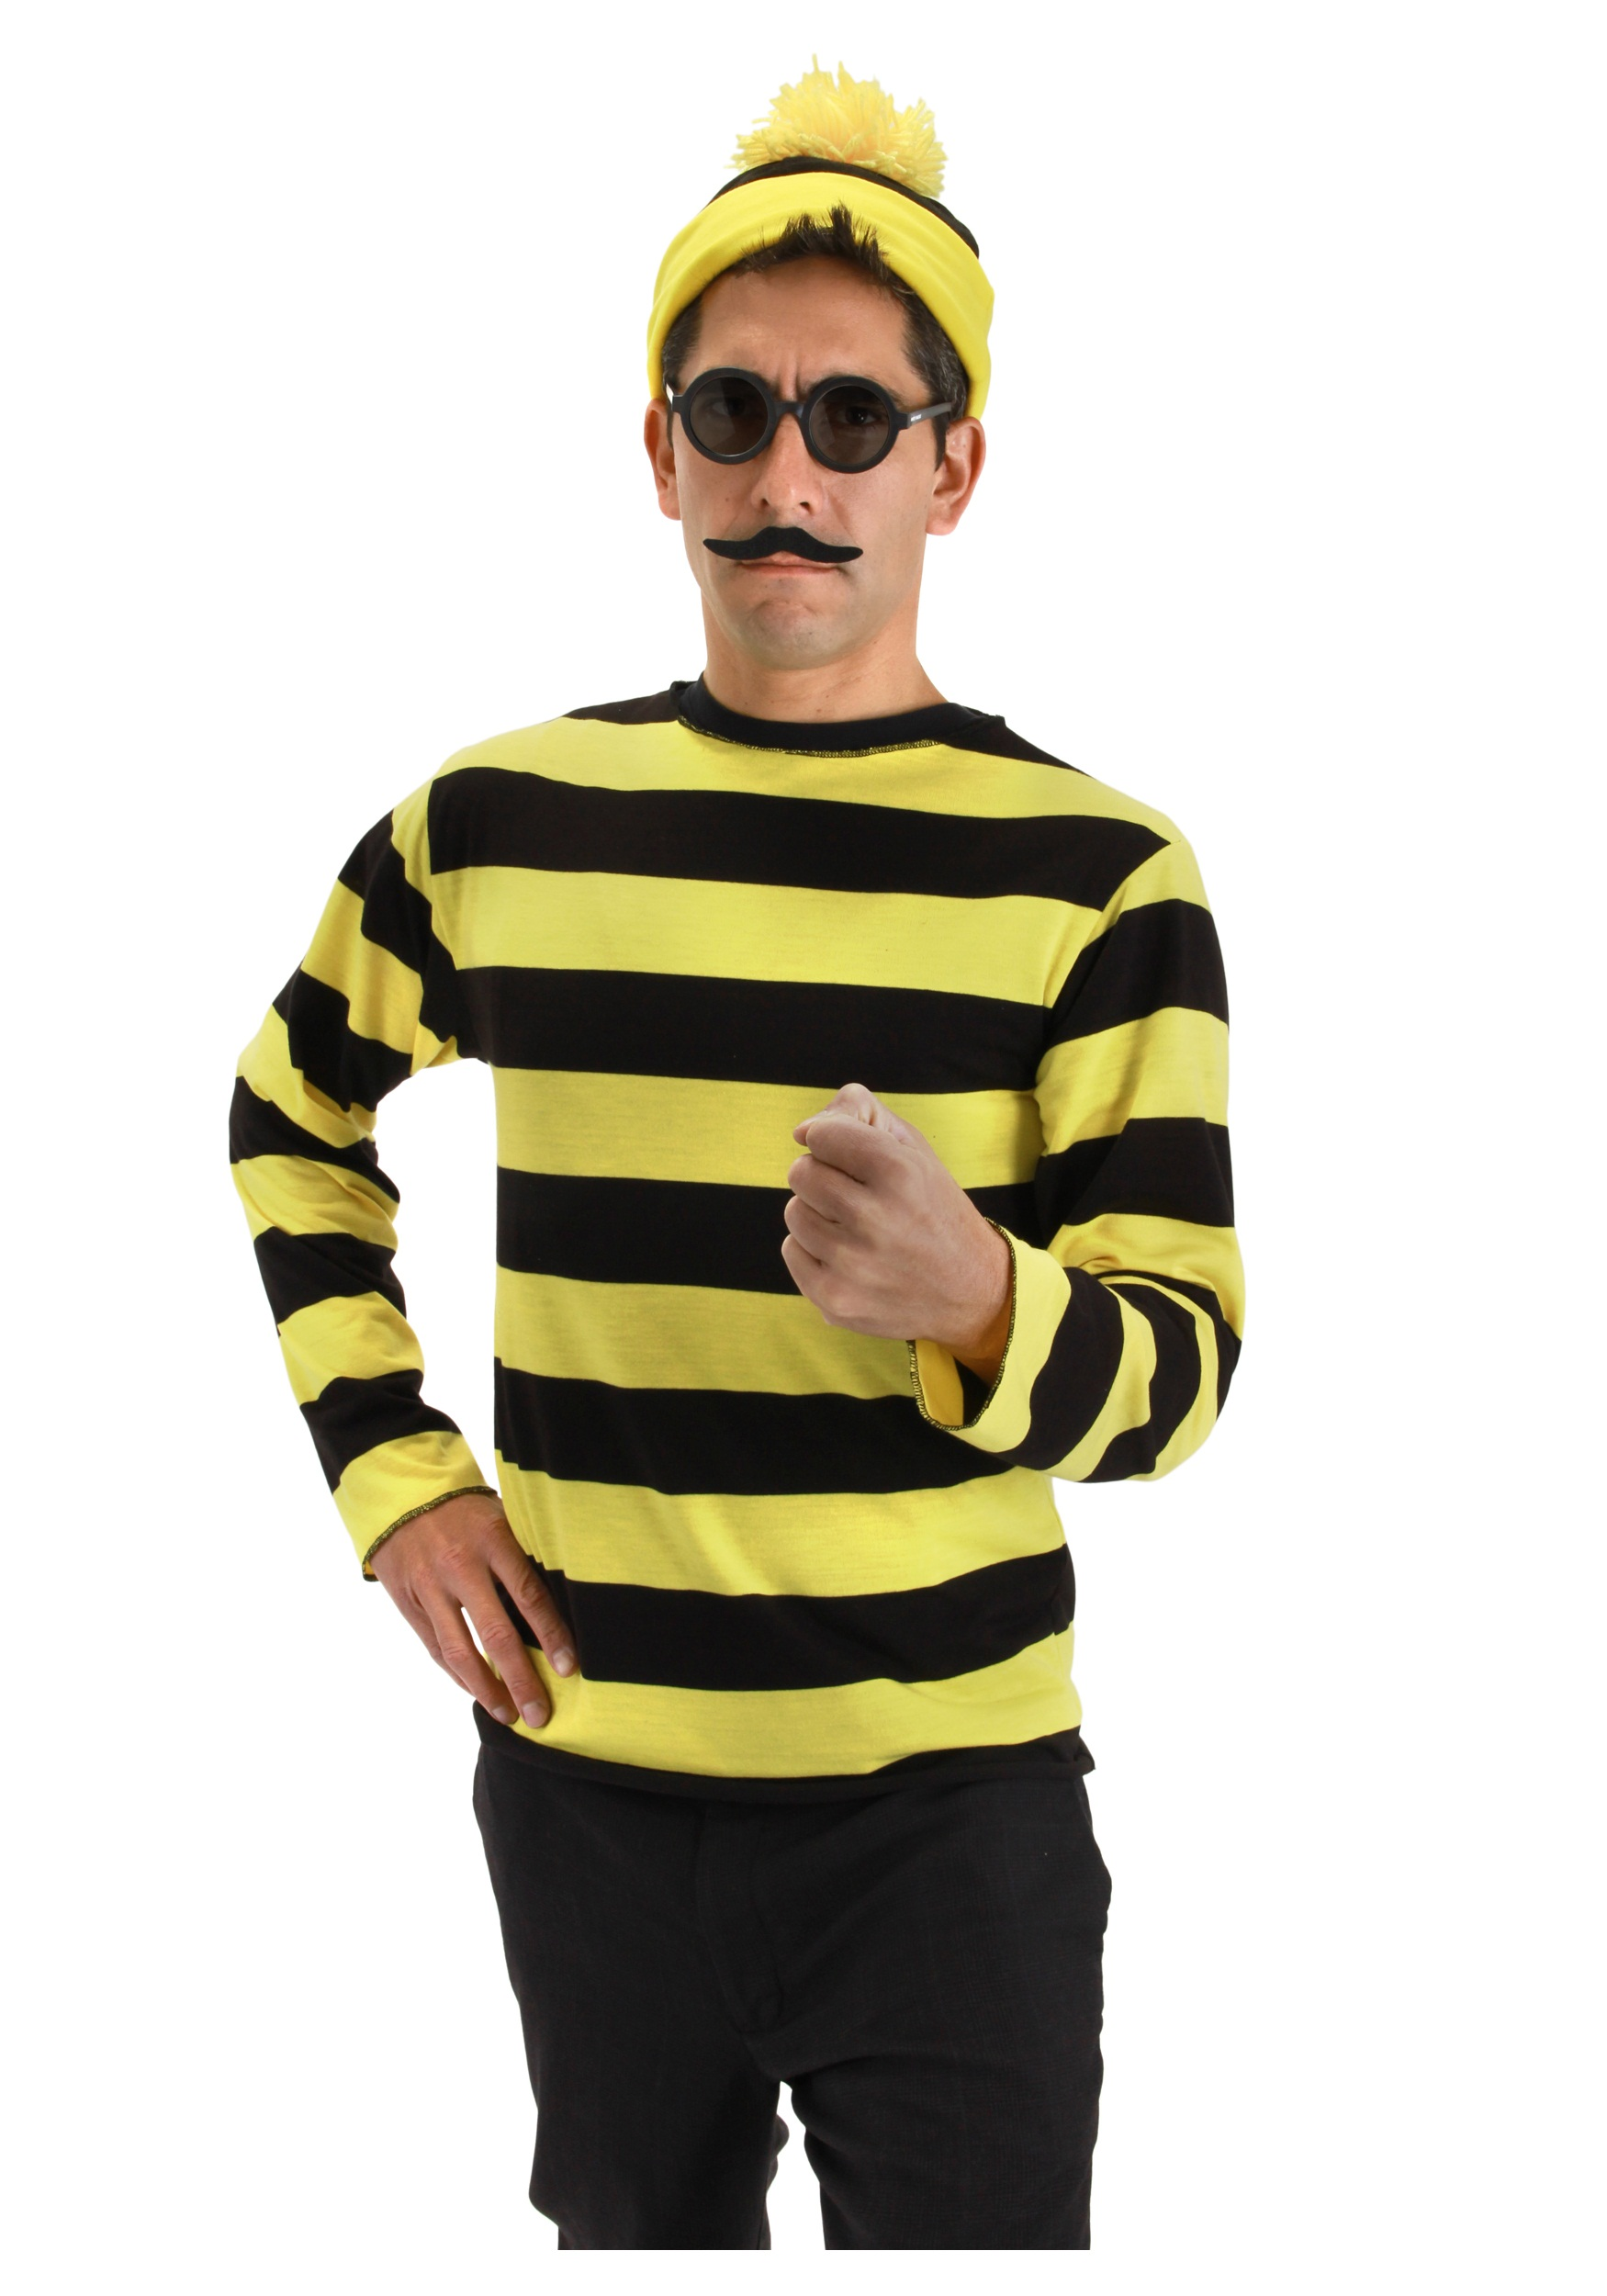 Cartoon Characters Yellow And Black Striped Shirts : Odlaw costume